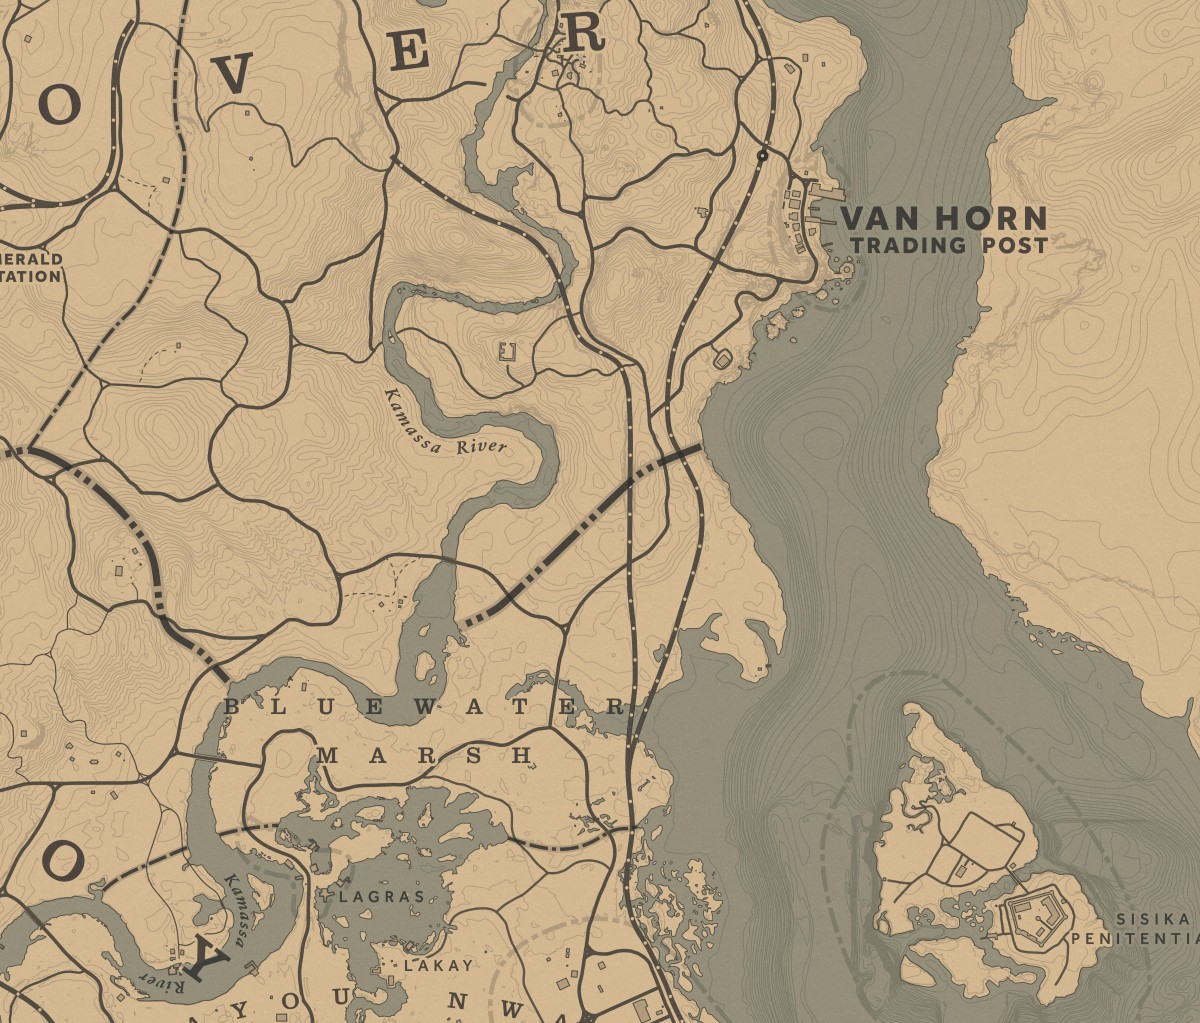 Pretty much anywhere in this screenshot is a good place to find them, though you can find them almost everywhere. You can even fish for them in Lagras, though you're more likely to catch a Bullhead Catfish.